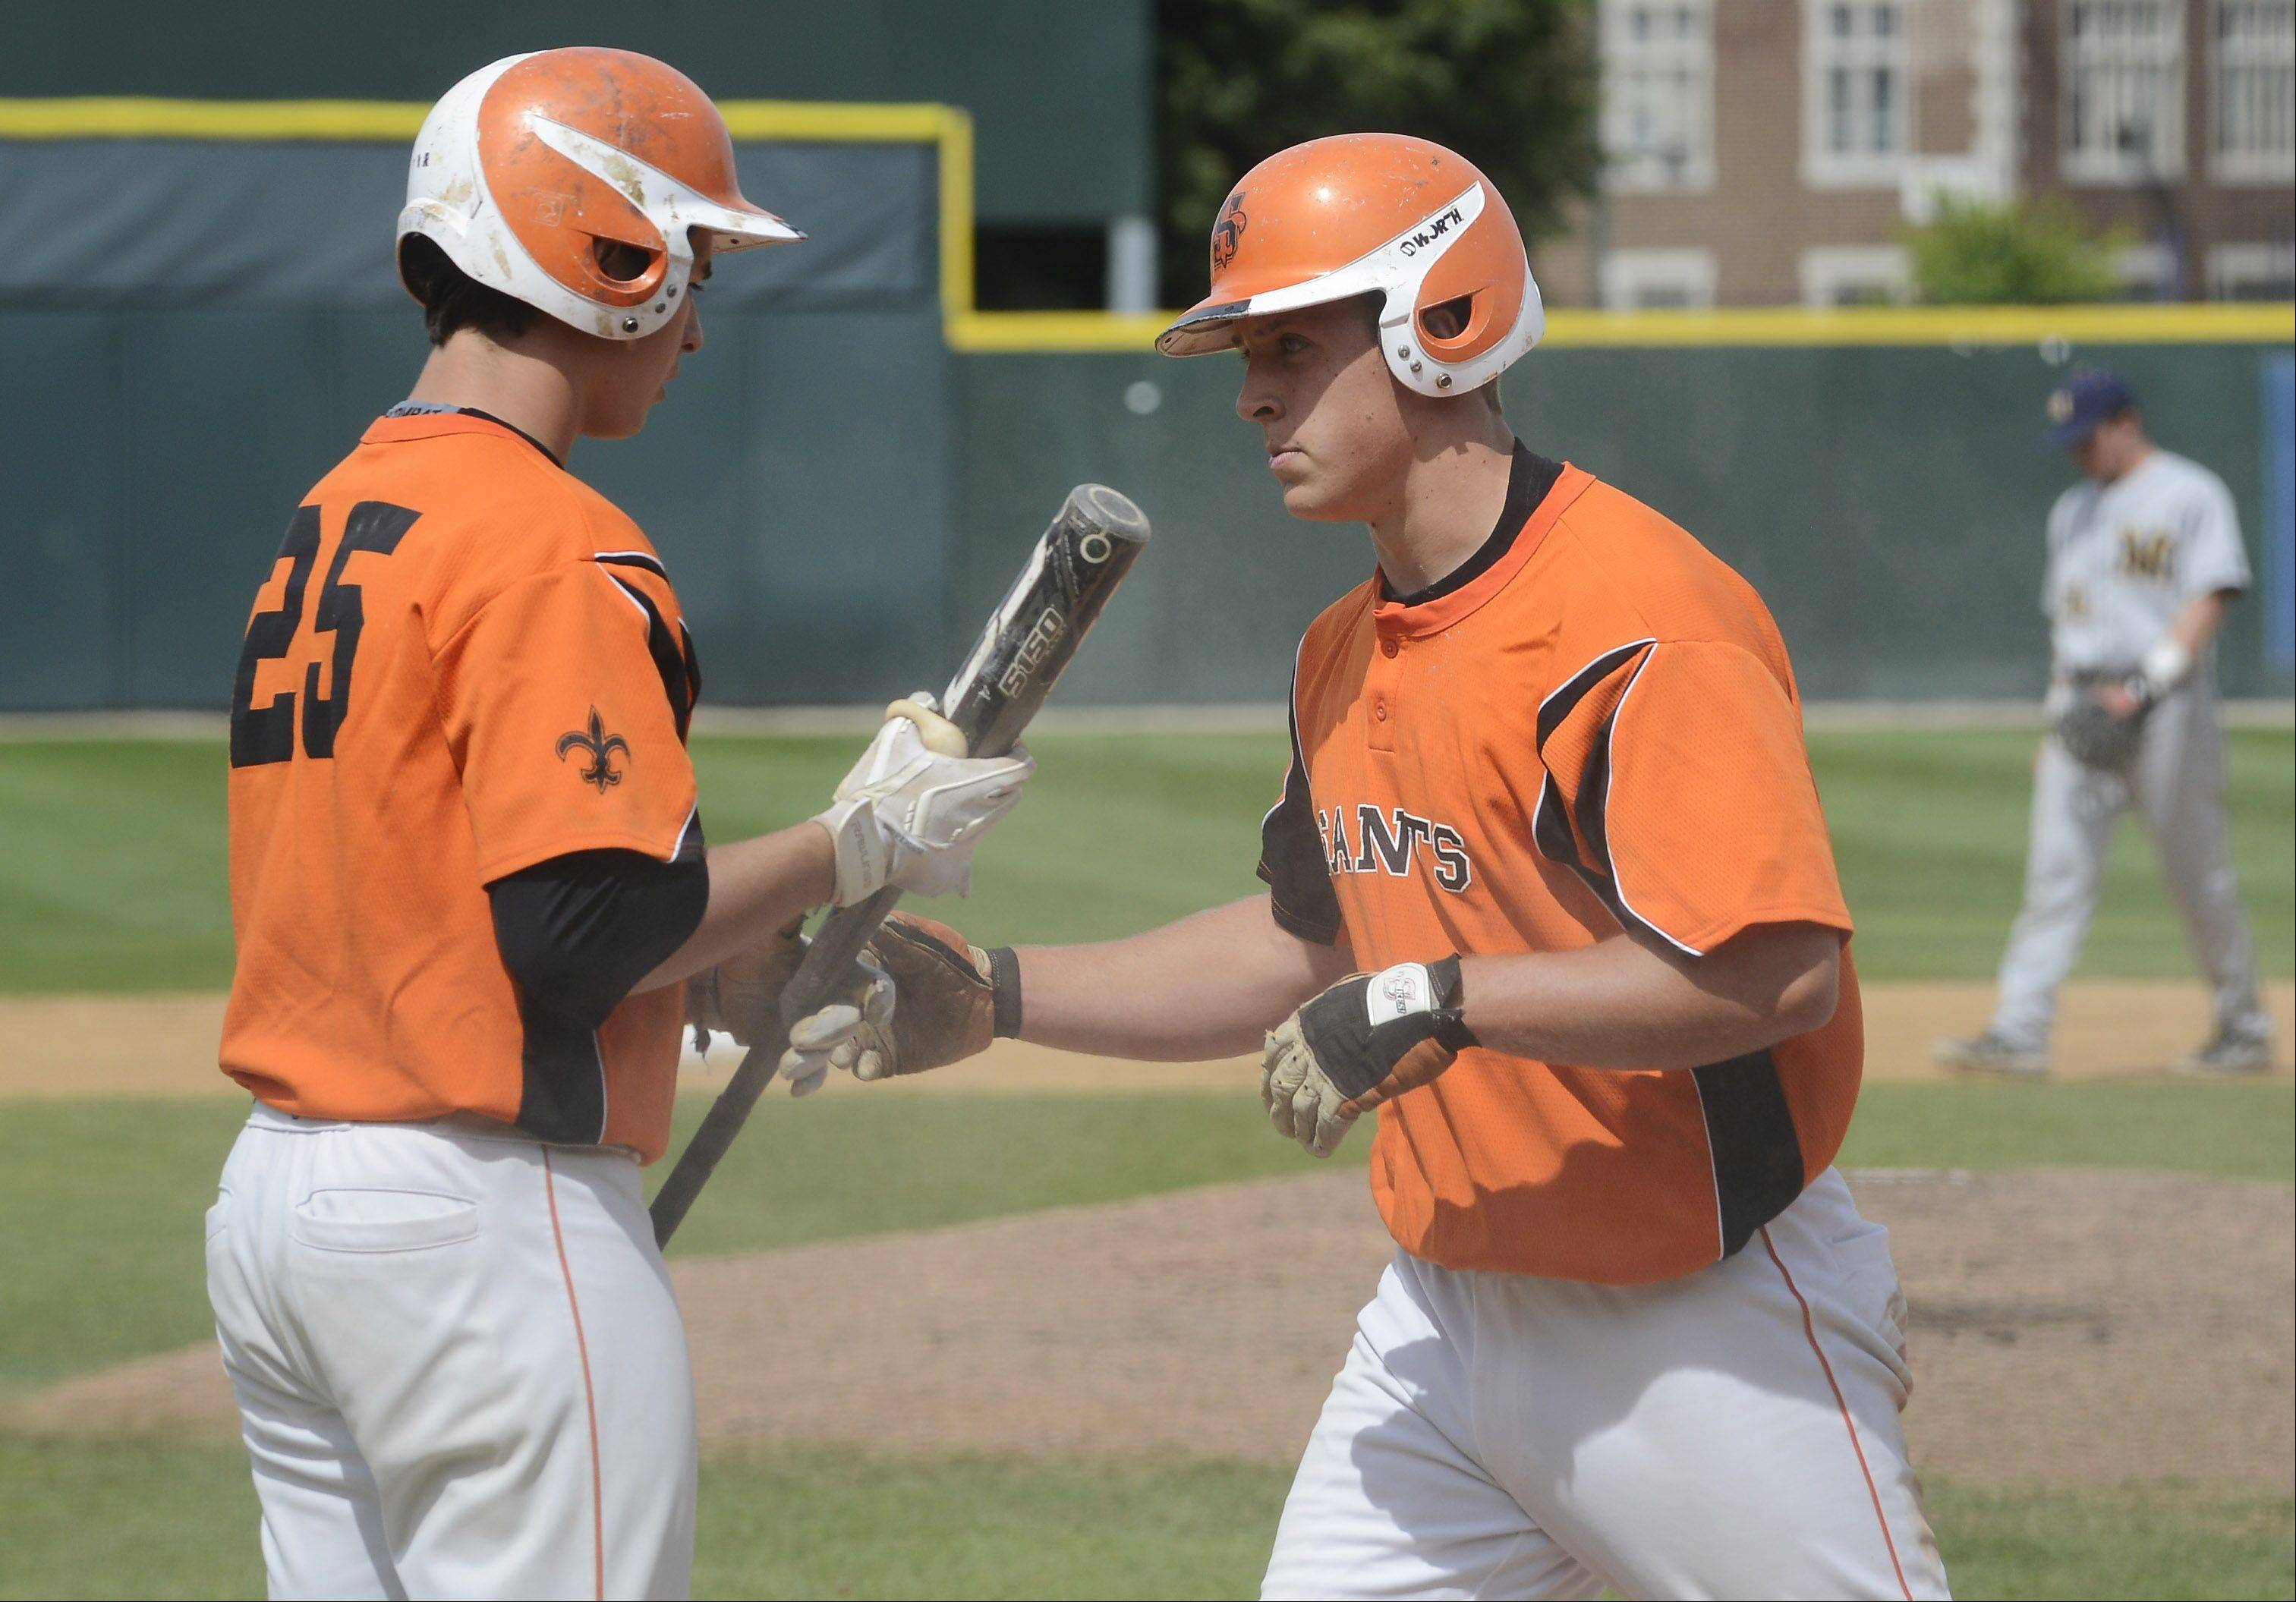 St. Charles East's Joe Hoscheit, right, gets a fist bump from teammate Brian Sobieski after scoring against Neuqua Valley during the Class 4A baseball third-place game at Silver Cross Field in Joliet on Saturday.